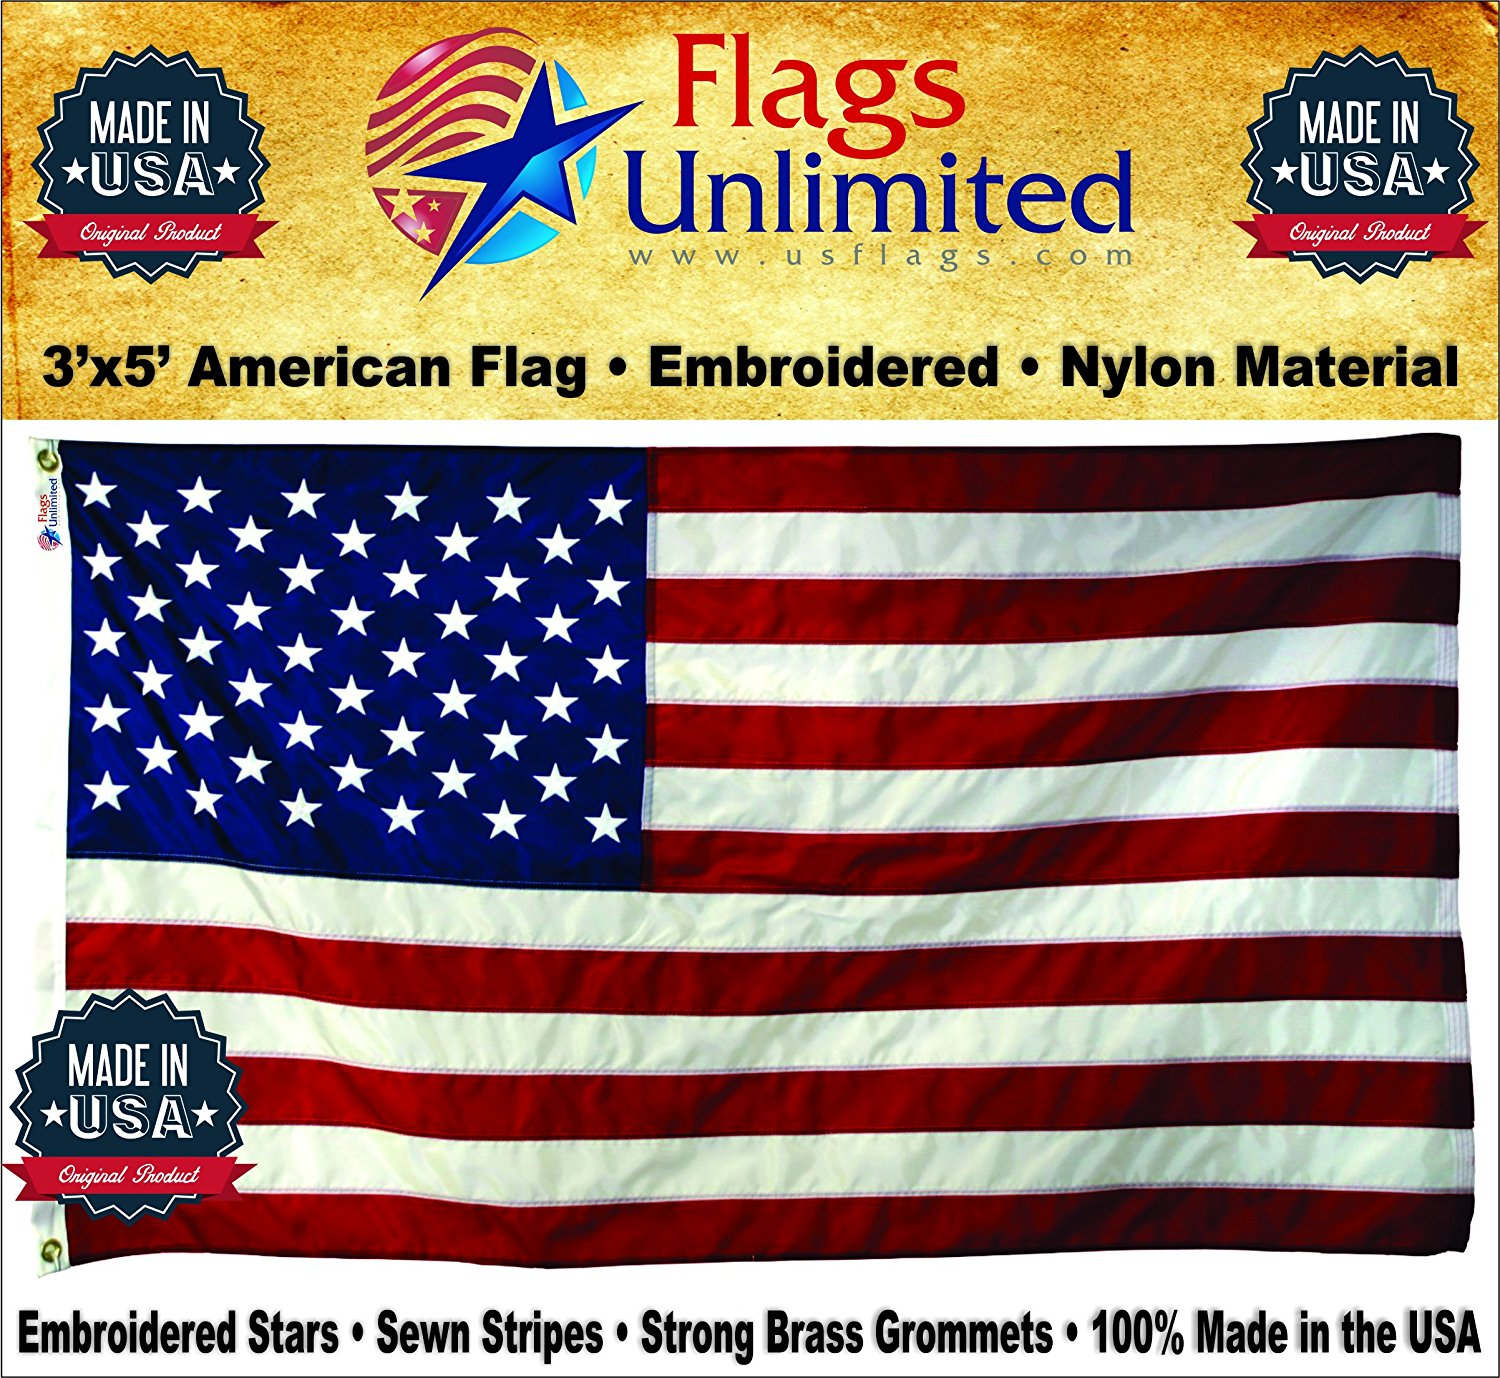 American Flag: 100% American Made - Embroidered Stars & Sewn Stripes - 3 x 5 ft From Flags Unlimited (3 by 5 Foot)